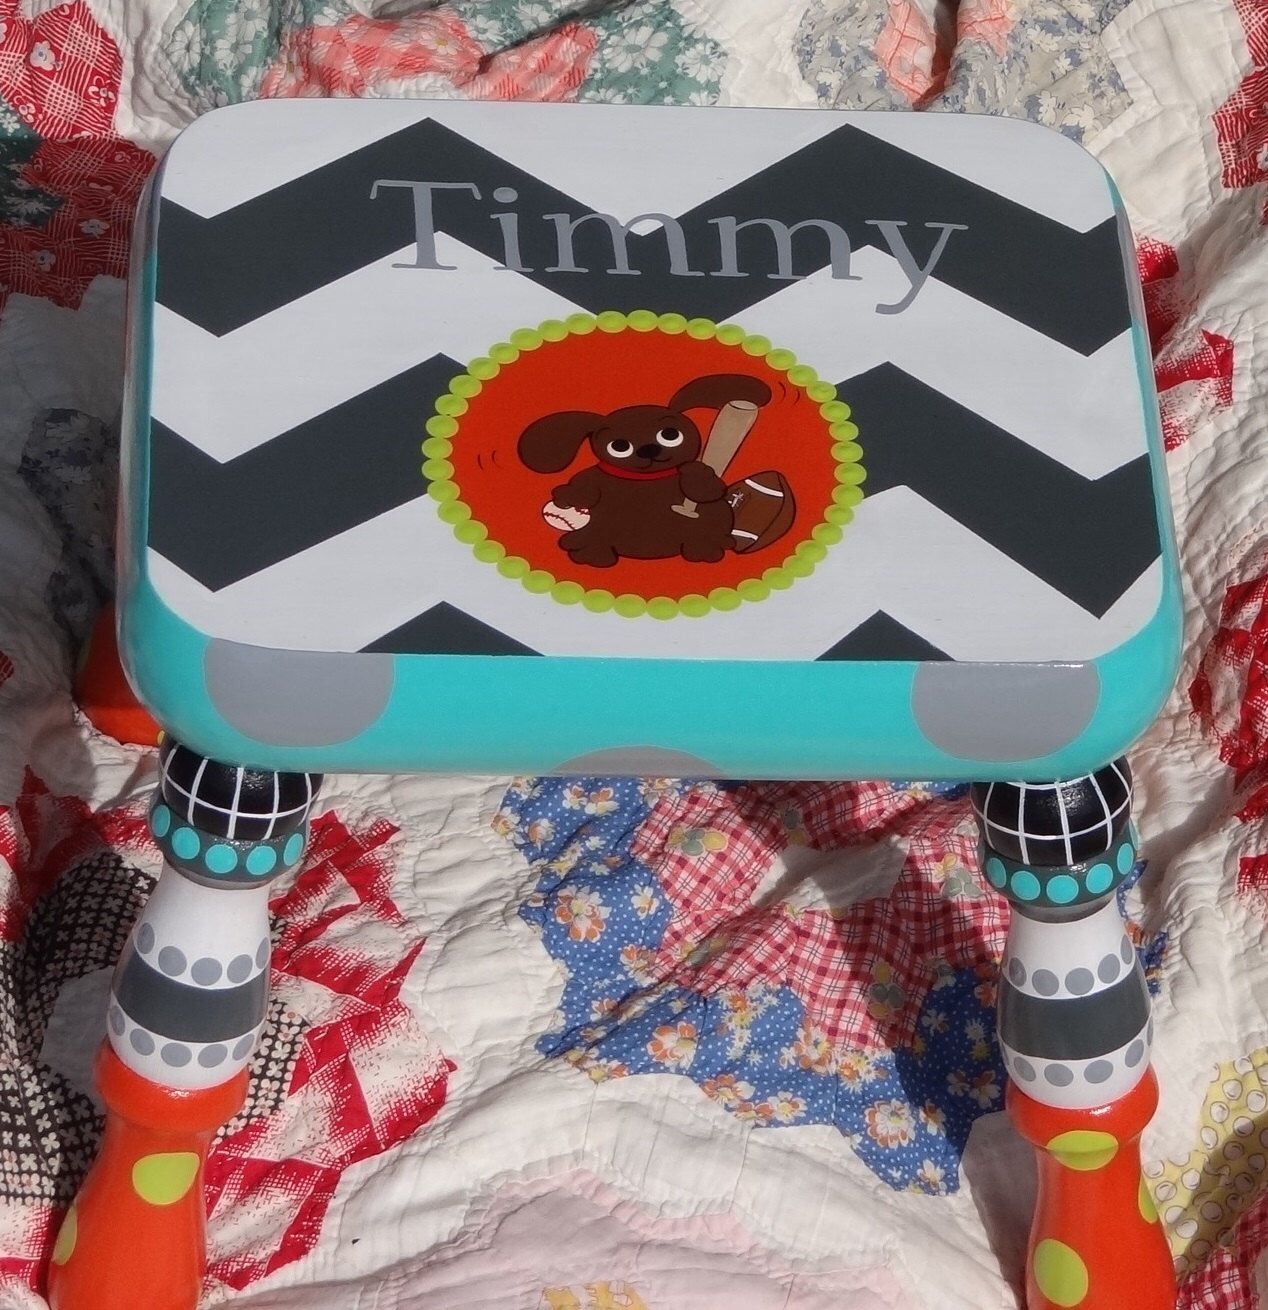 Personalized Kid's Foot Stool, Step Stool For Boys, Personlaized Nursery Decor, Kids Bathroom Stool, Child's Stool by elliesshop on Etsy https://www.etsy.com/listing/191669947/personalized-kids-foot-stool-step-stool